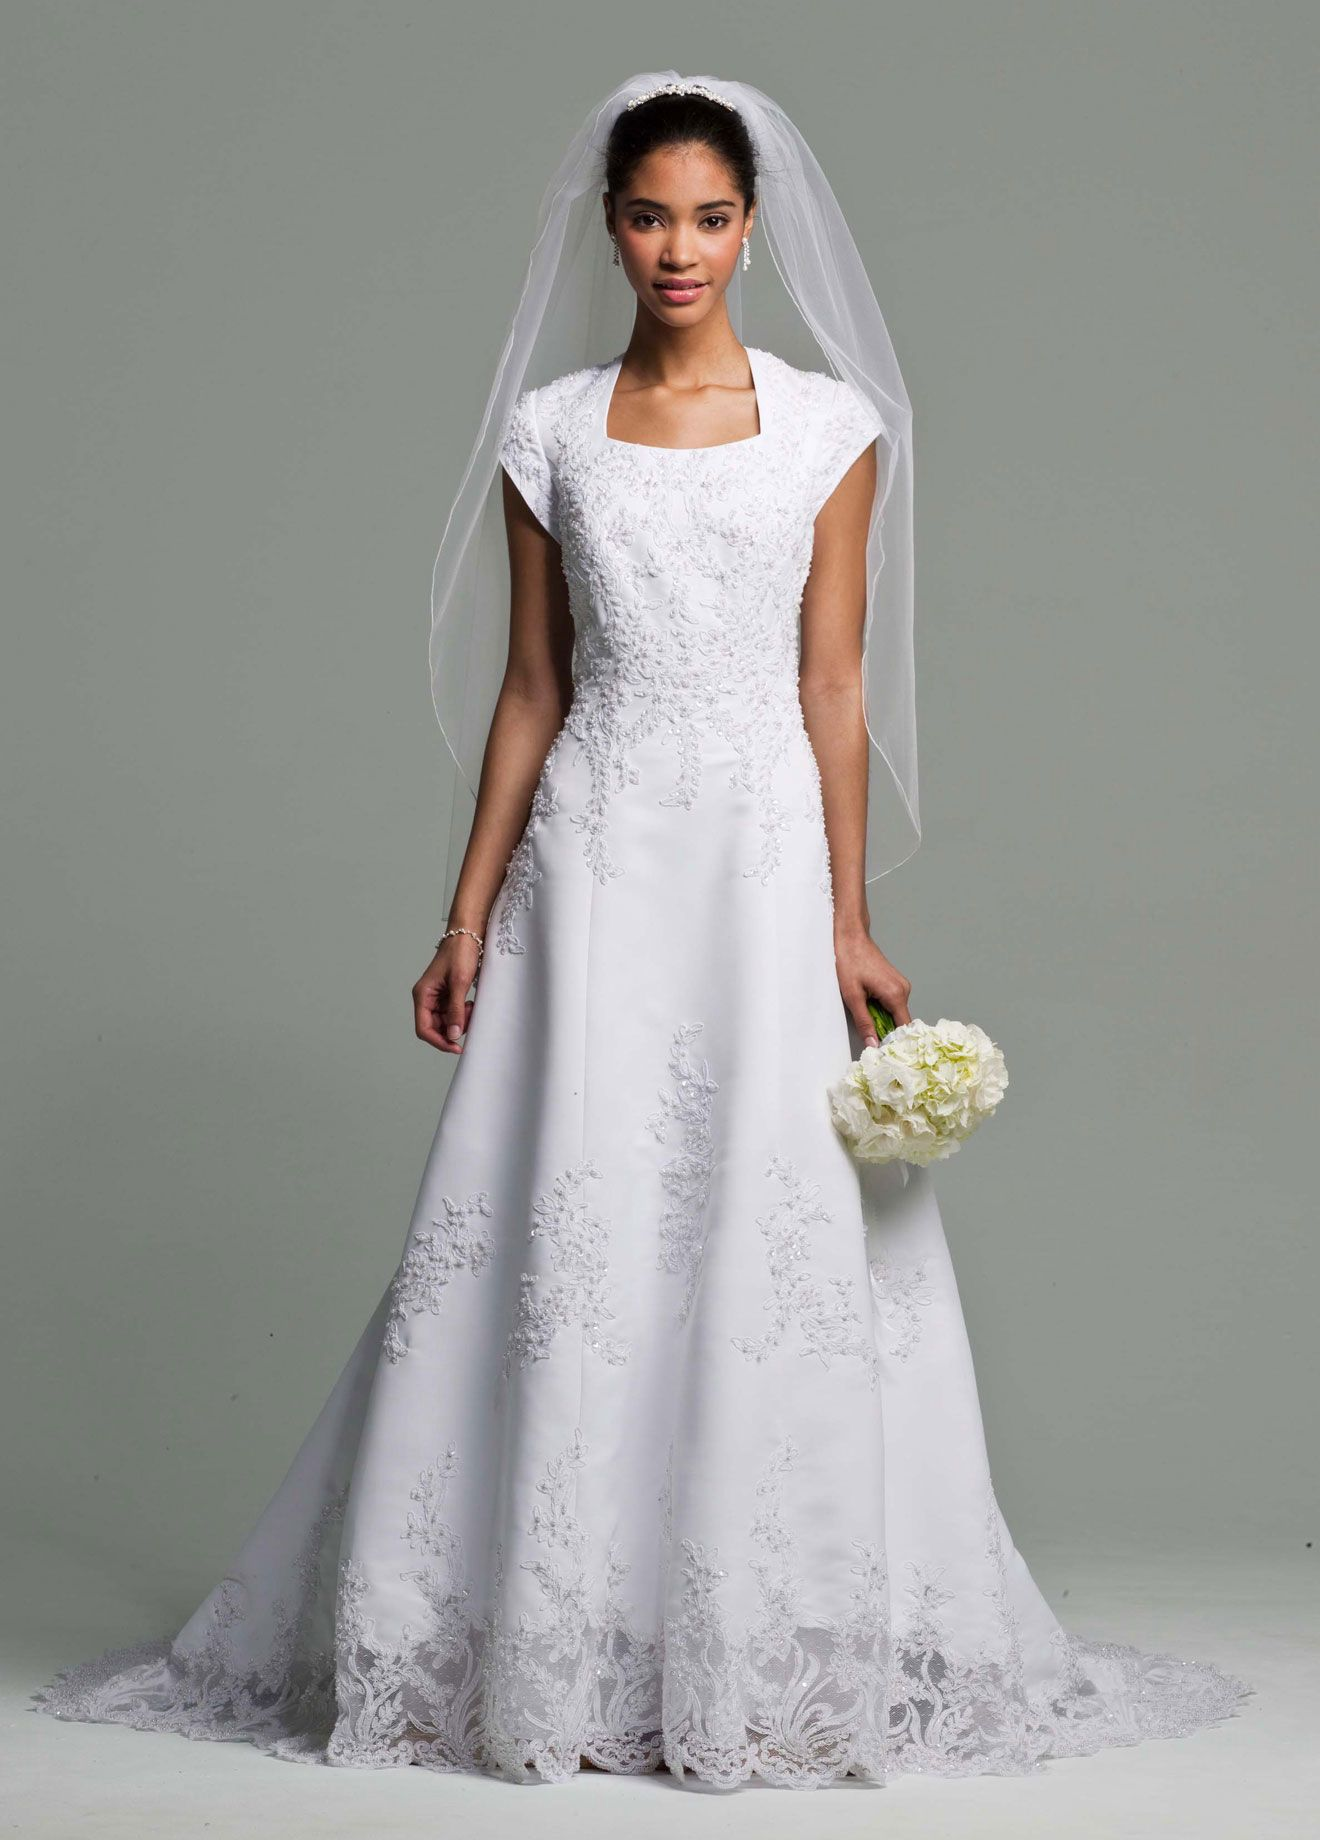 Top wedding dresses under 100 dollars to inspire you for Wedding dress 100 dollars